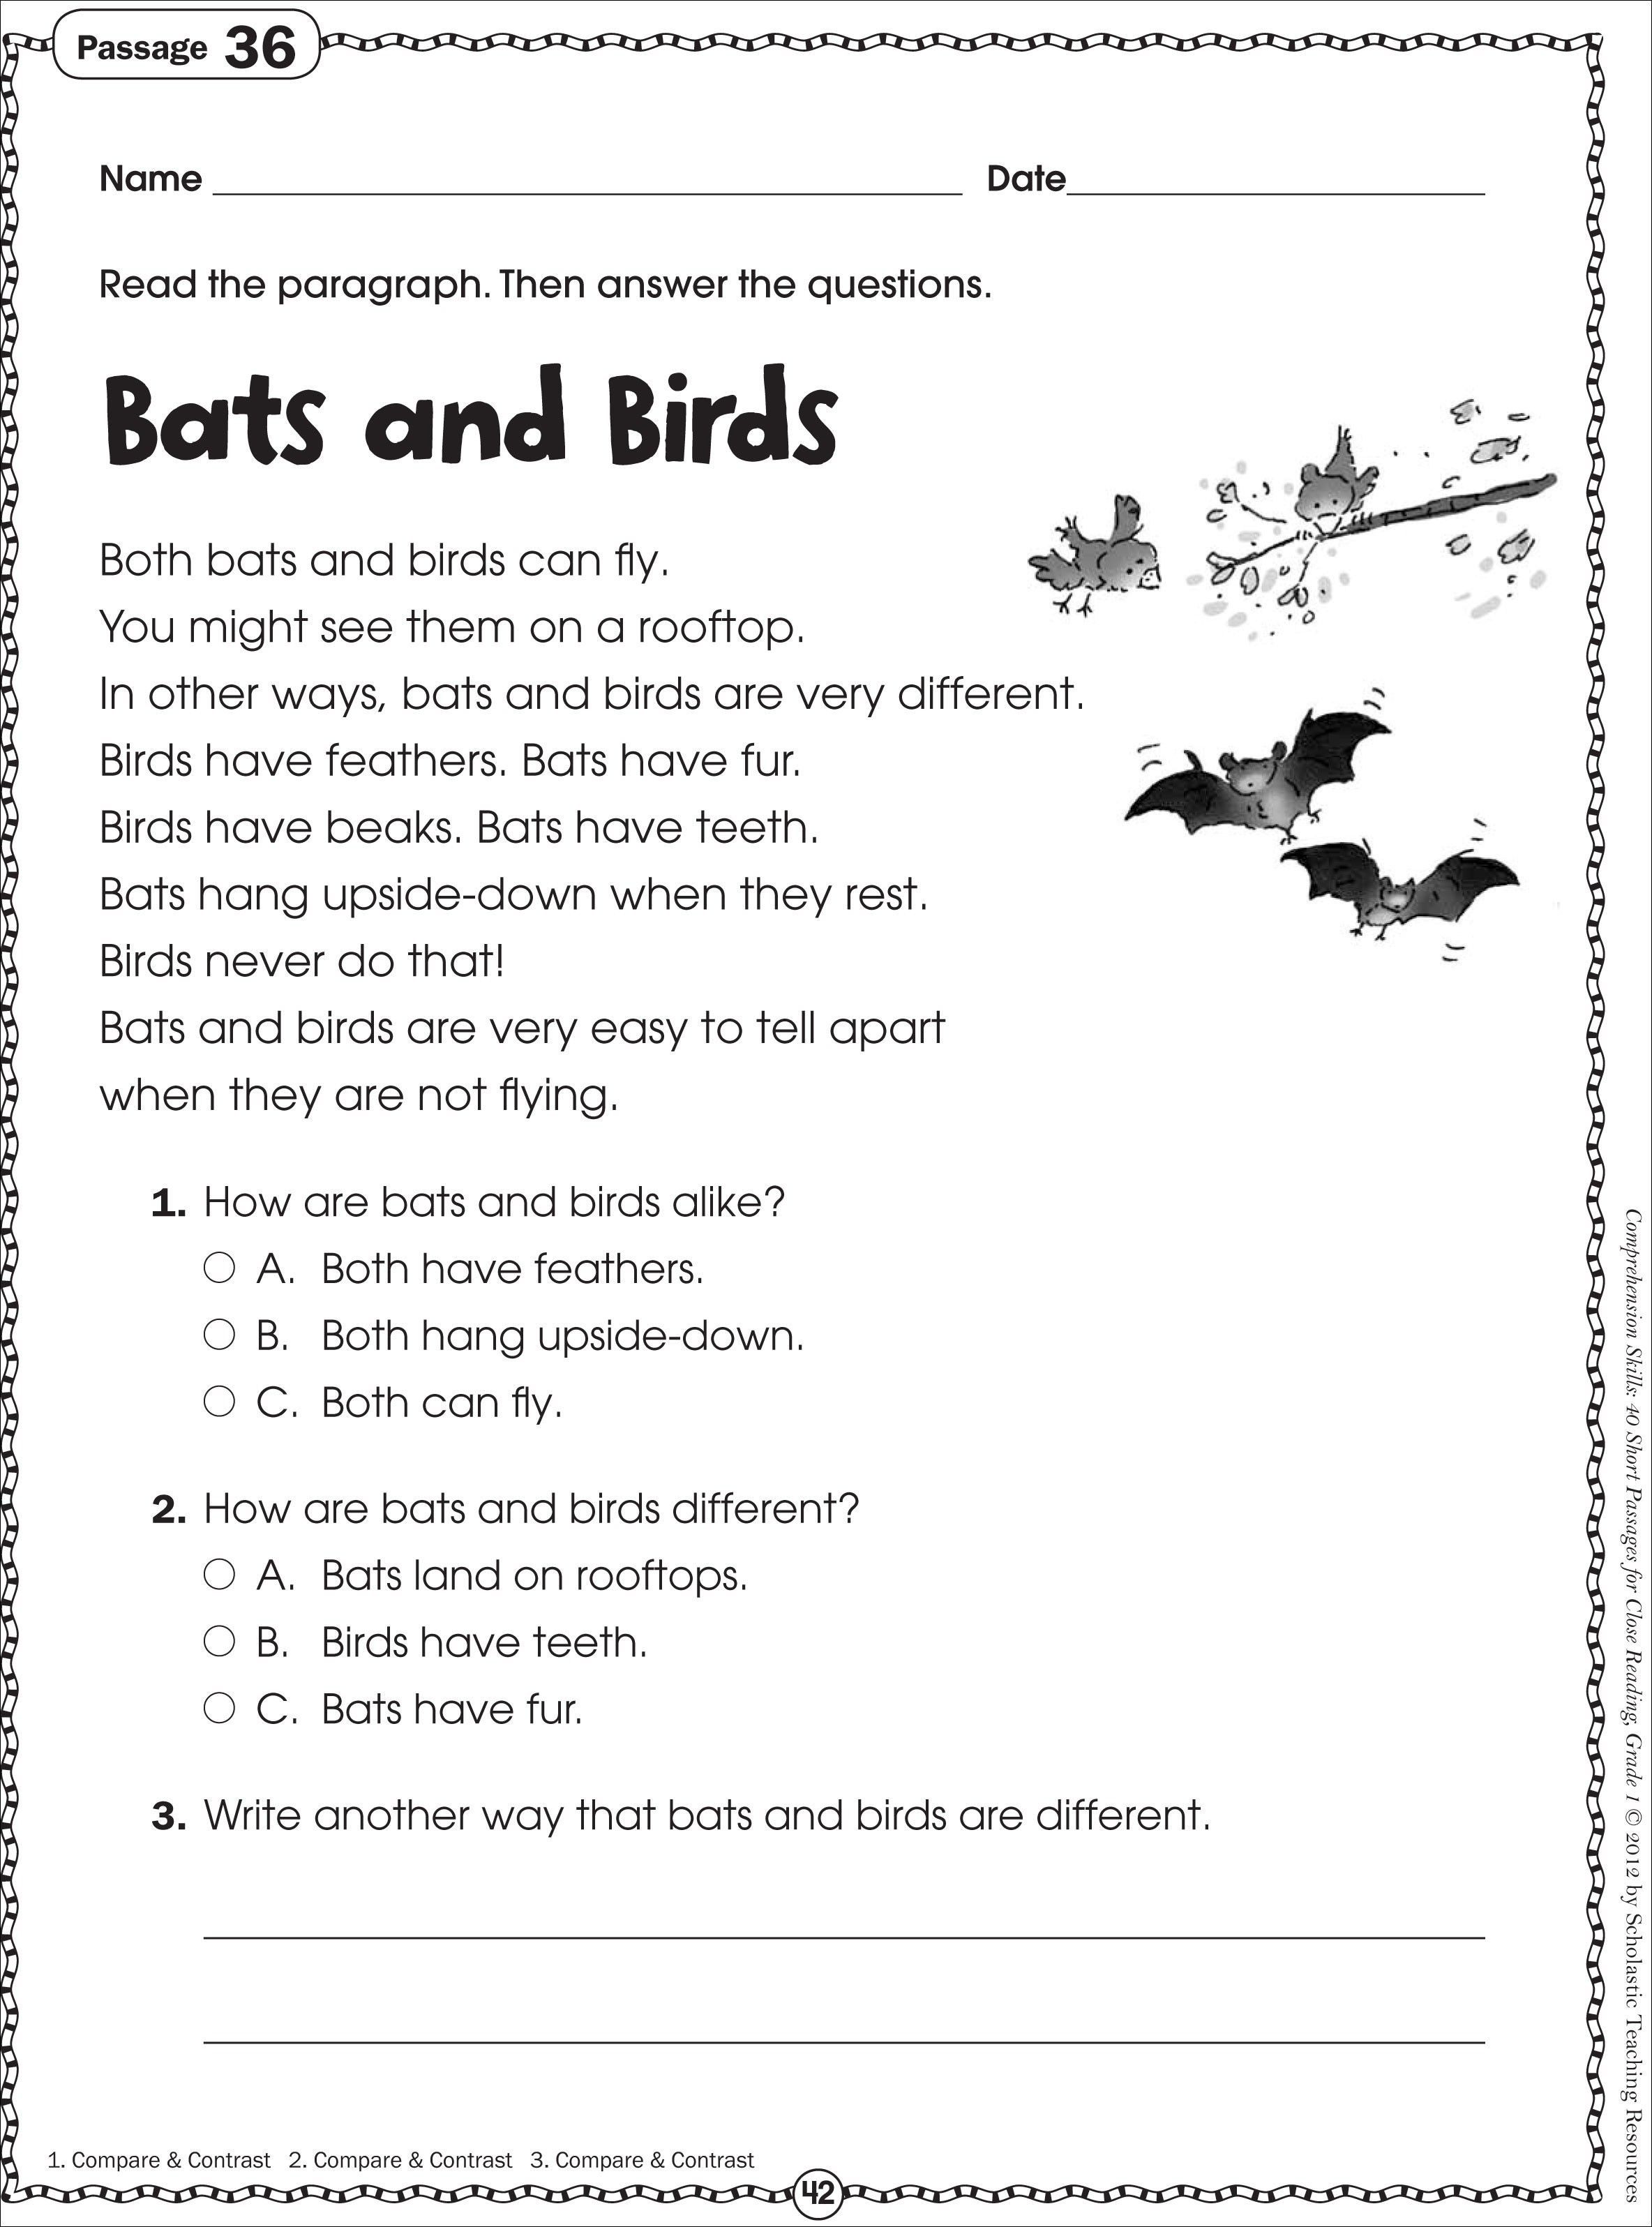 Free Printable Reading Comprehension Worksheets For Kindergarten   Printable Comprehension Worksheets For Grade 3